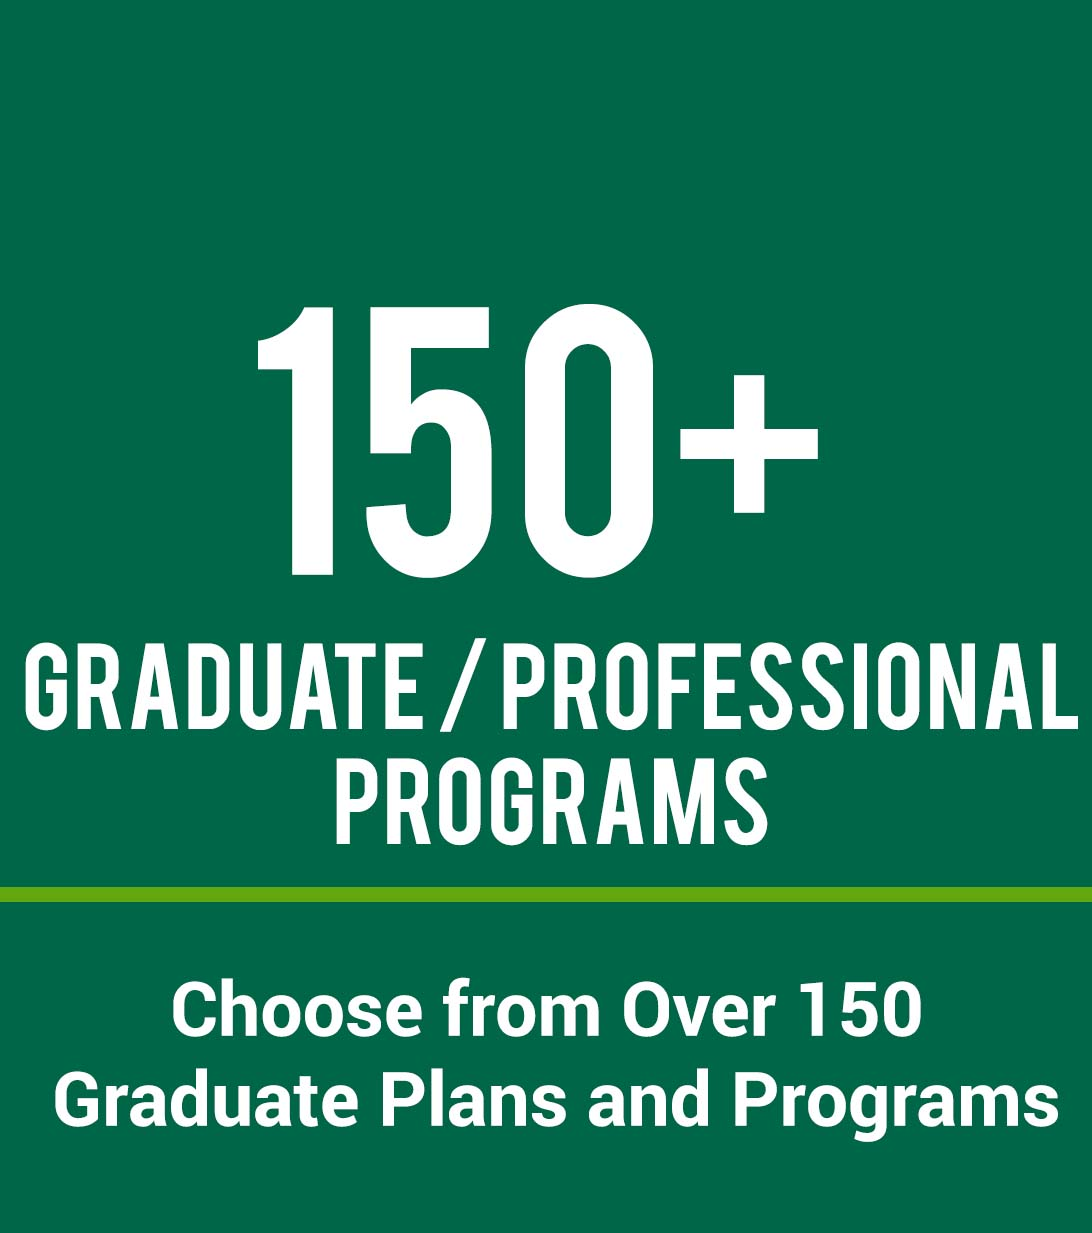 150 Graduate plans and programs